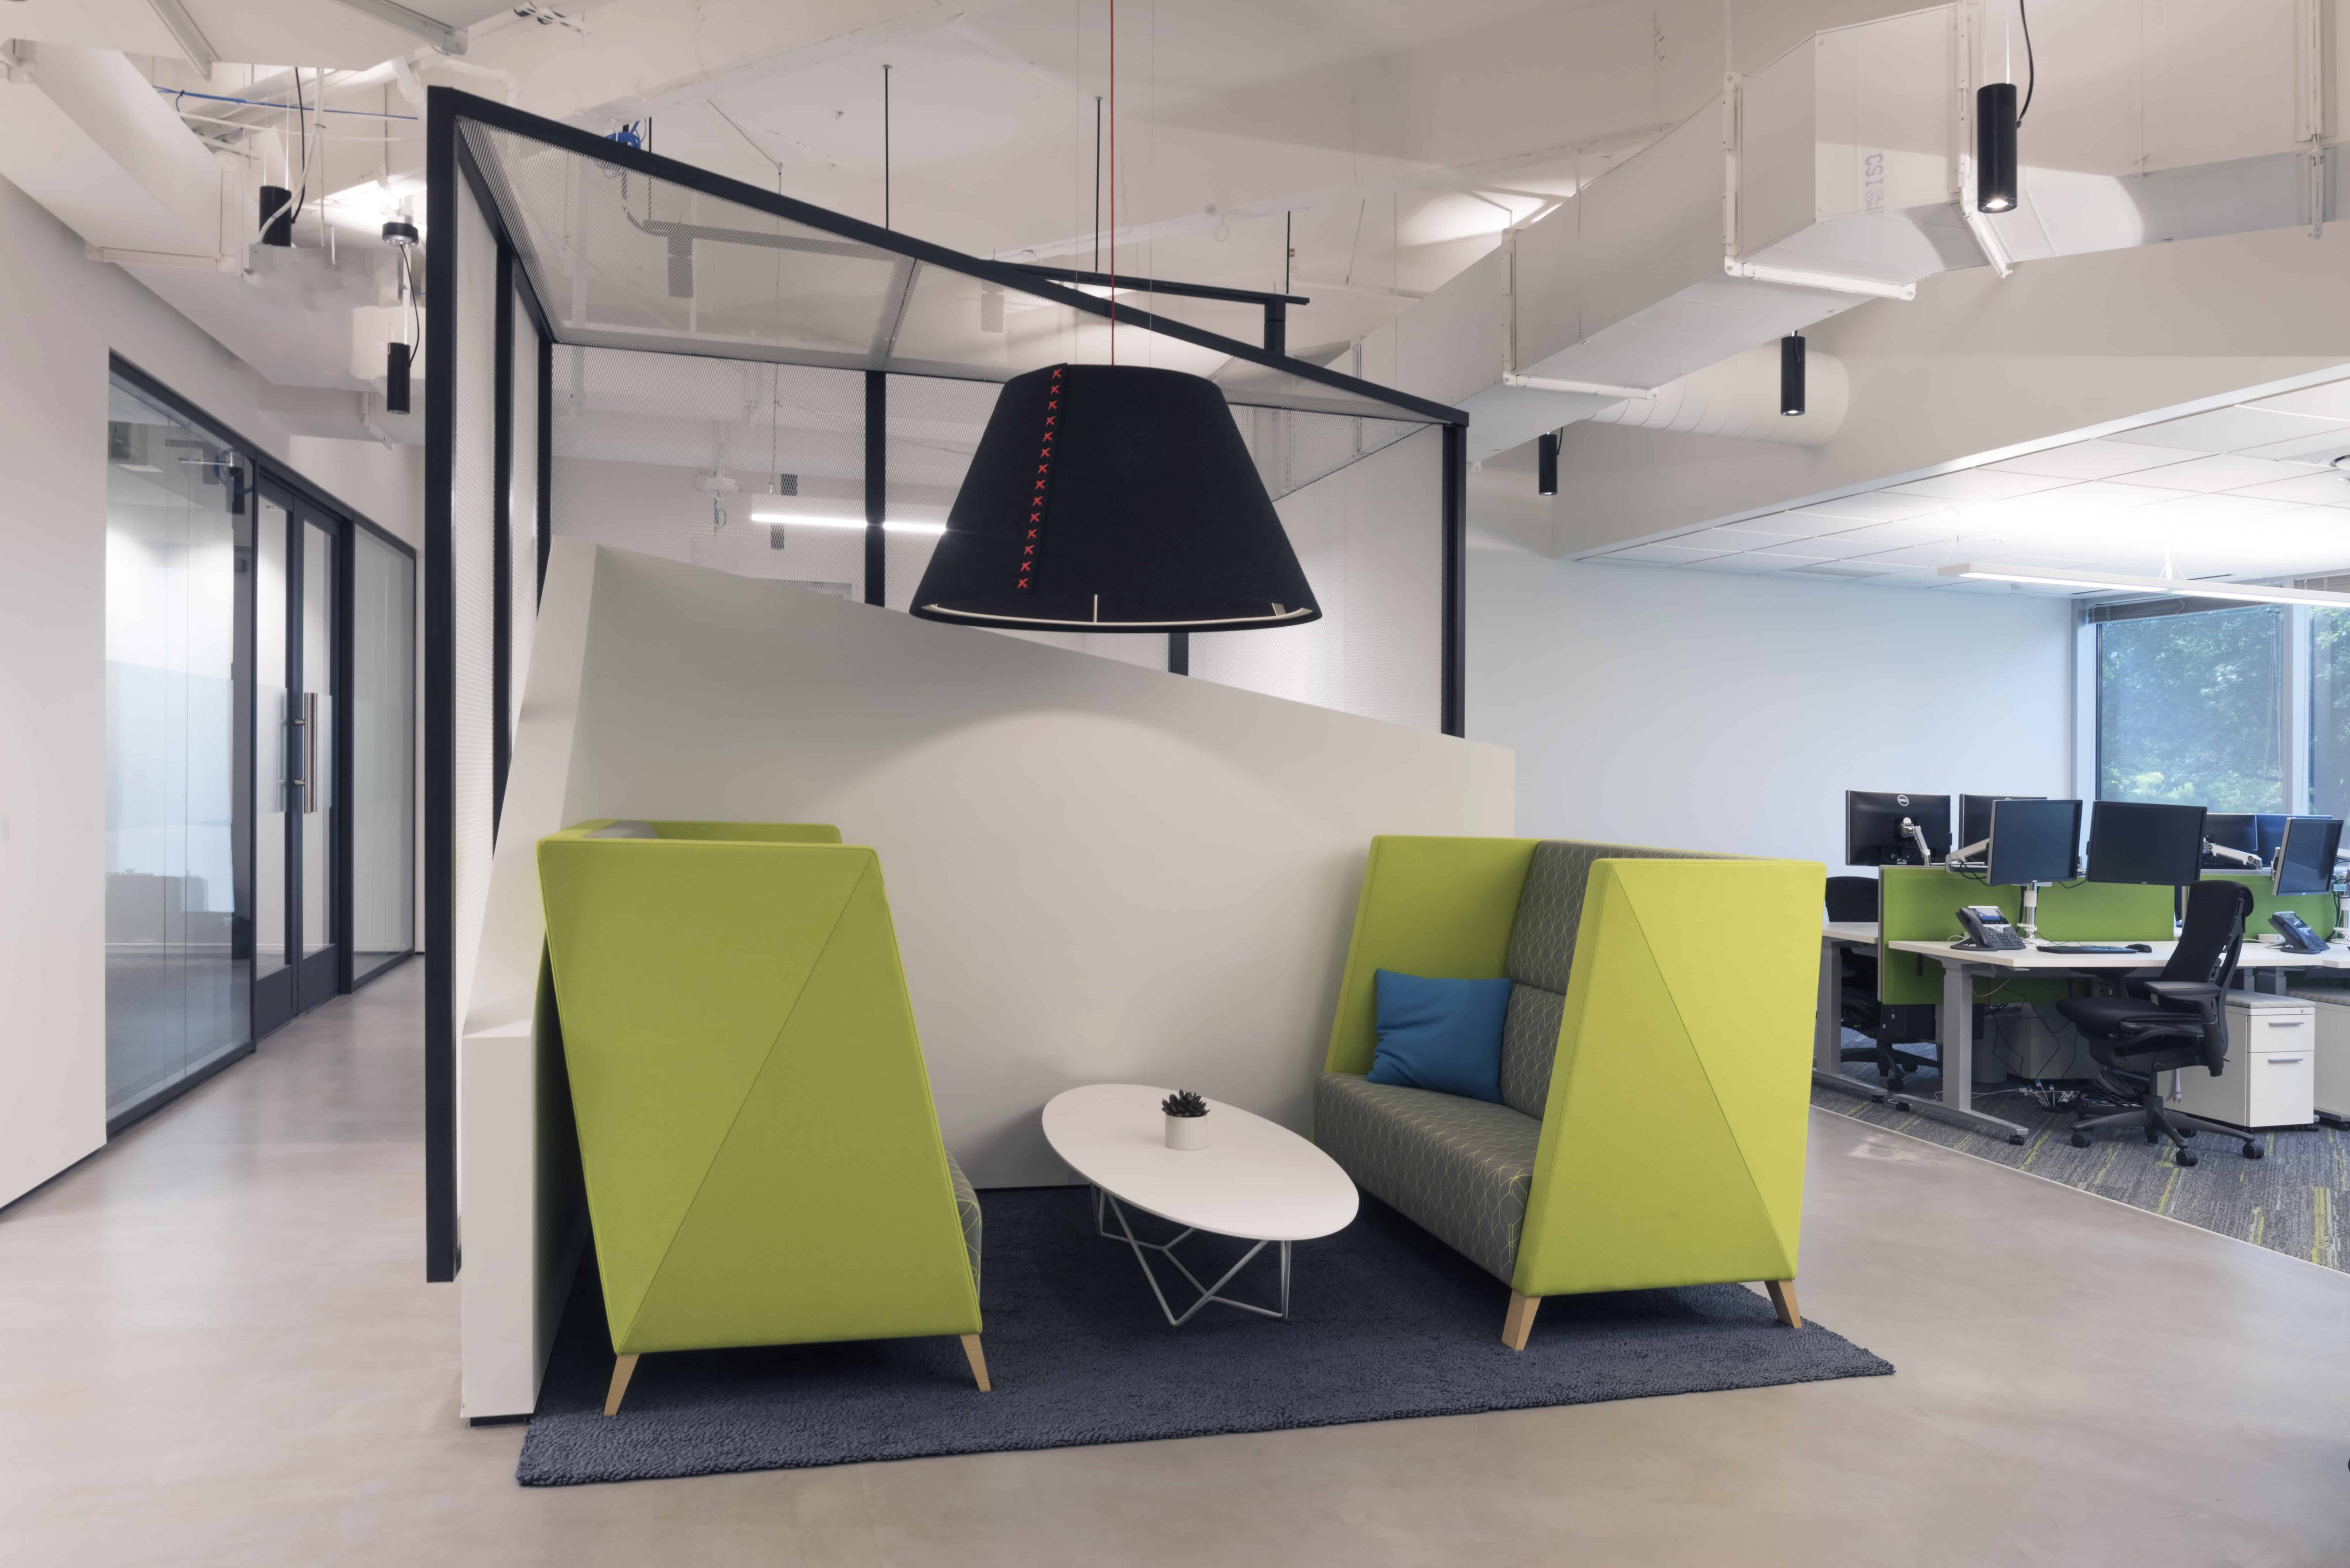 Austin Tech Office collaborative seating in open office workplace